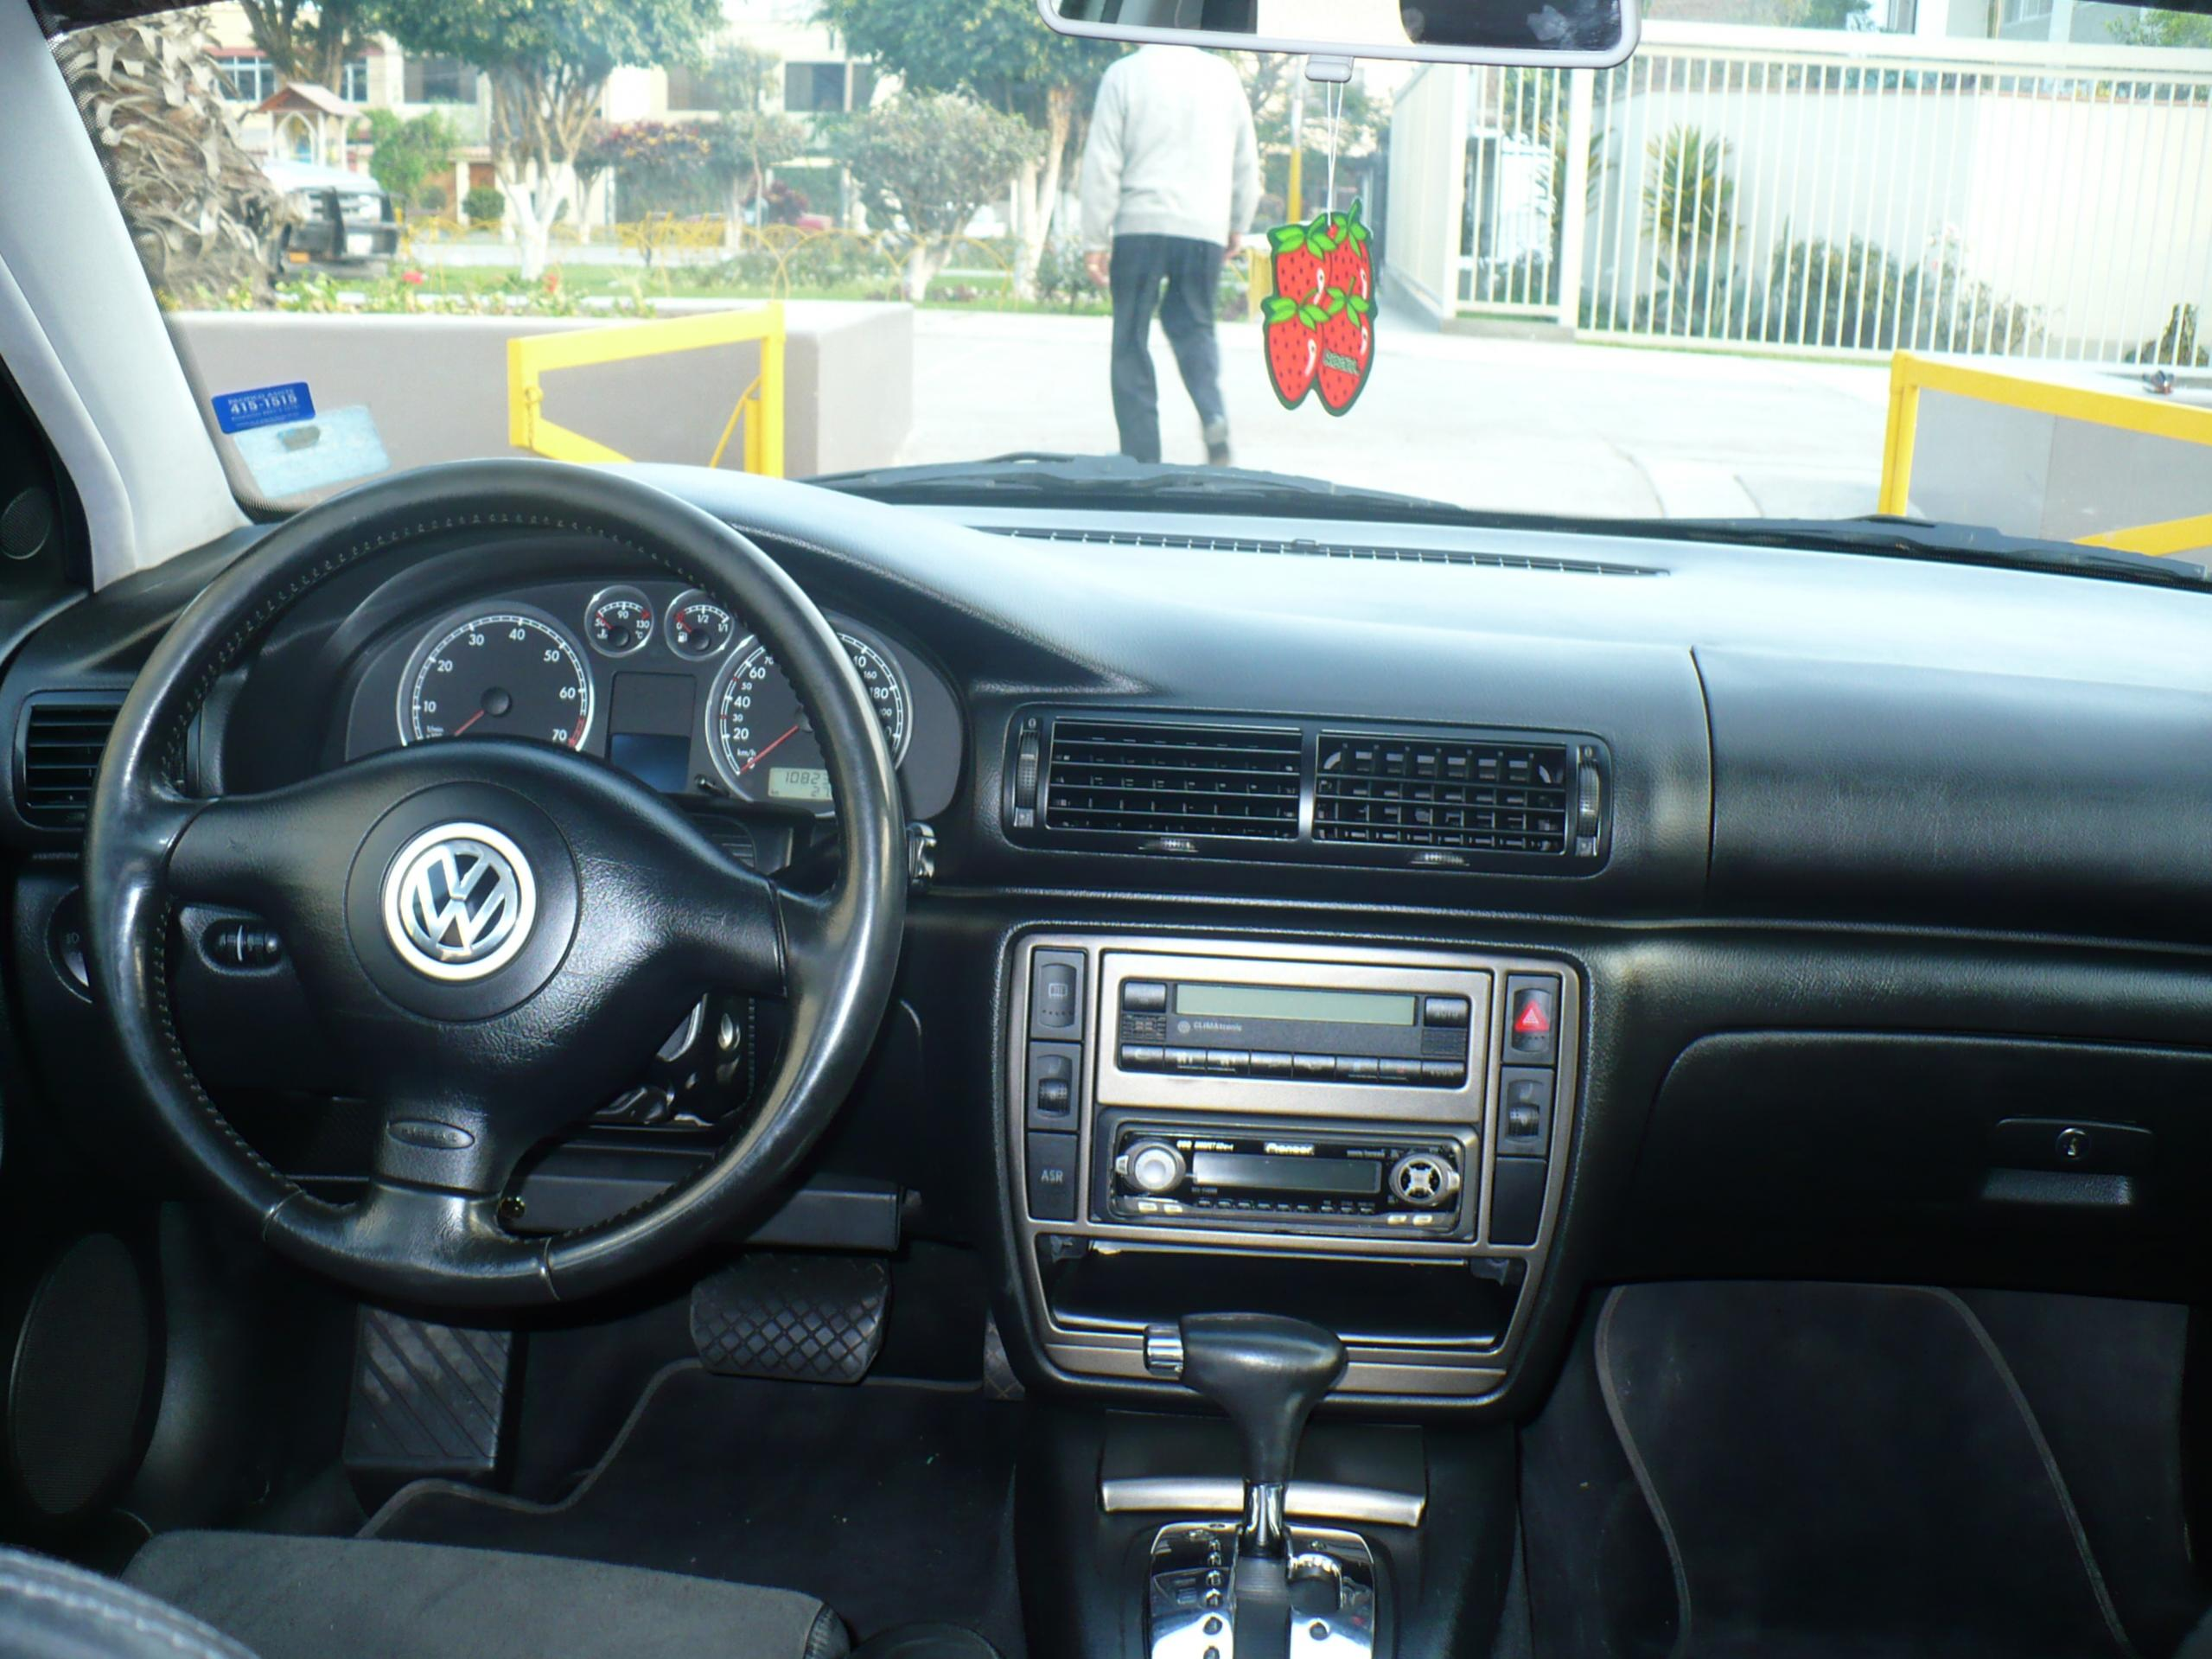 Volkswagen Passat 2.8 2001 photo - 3